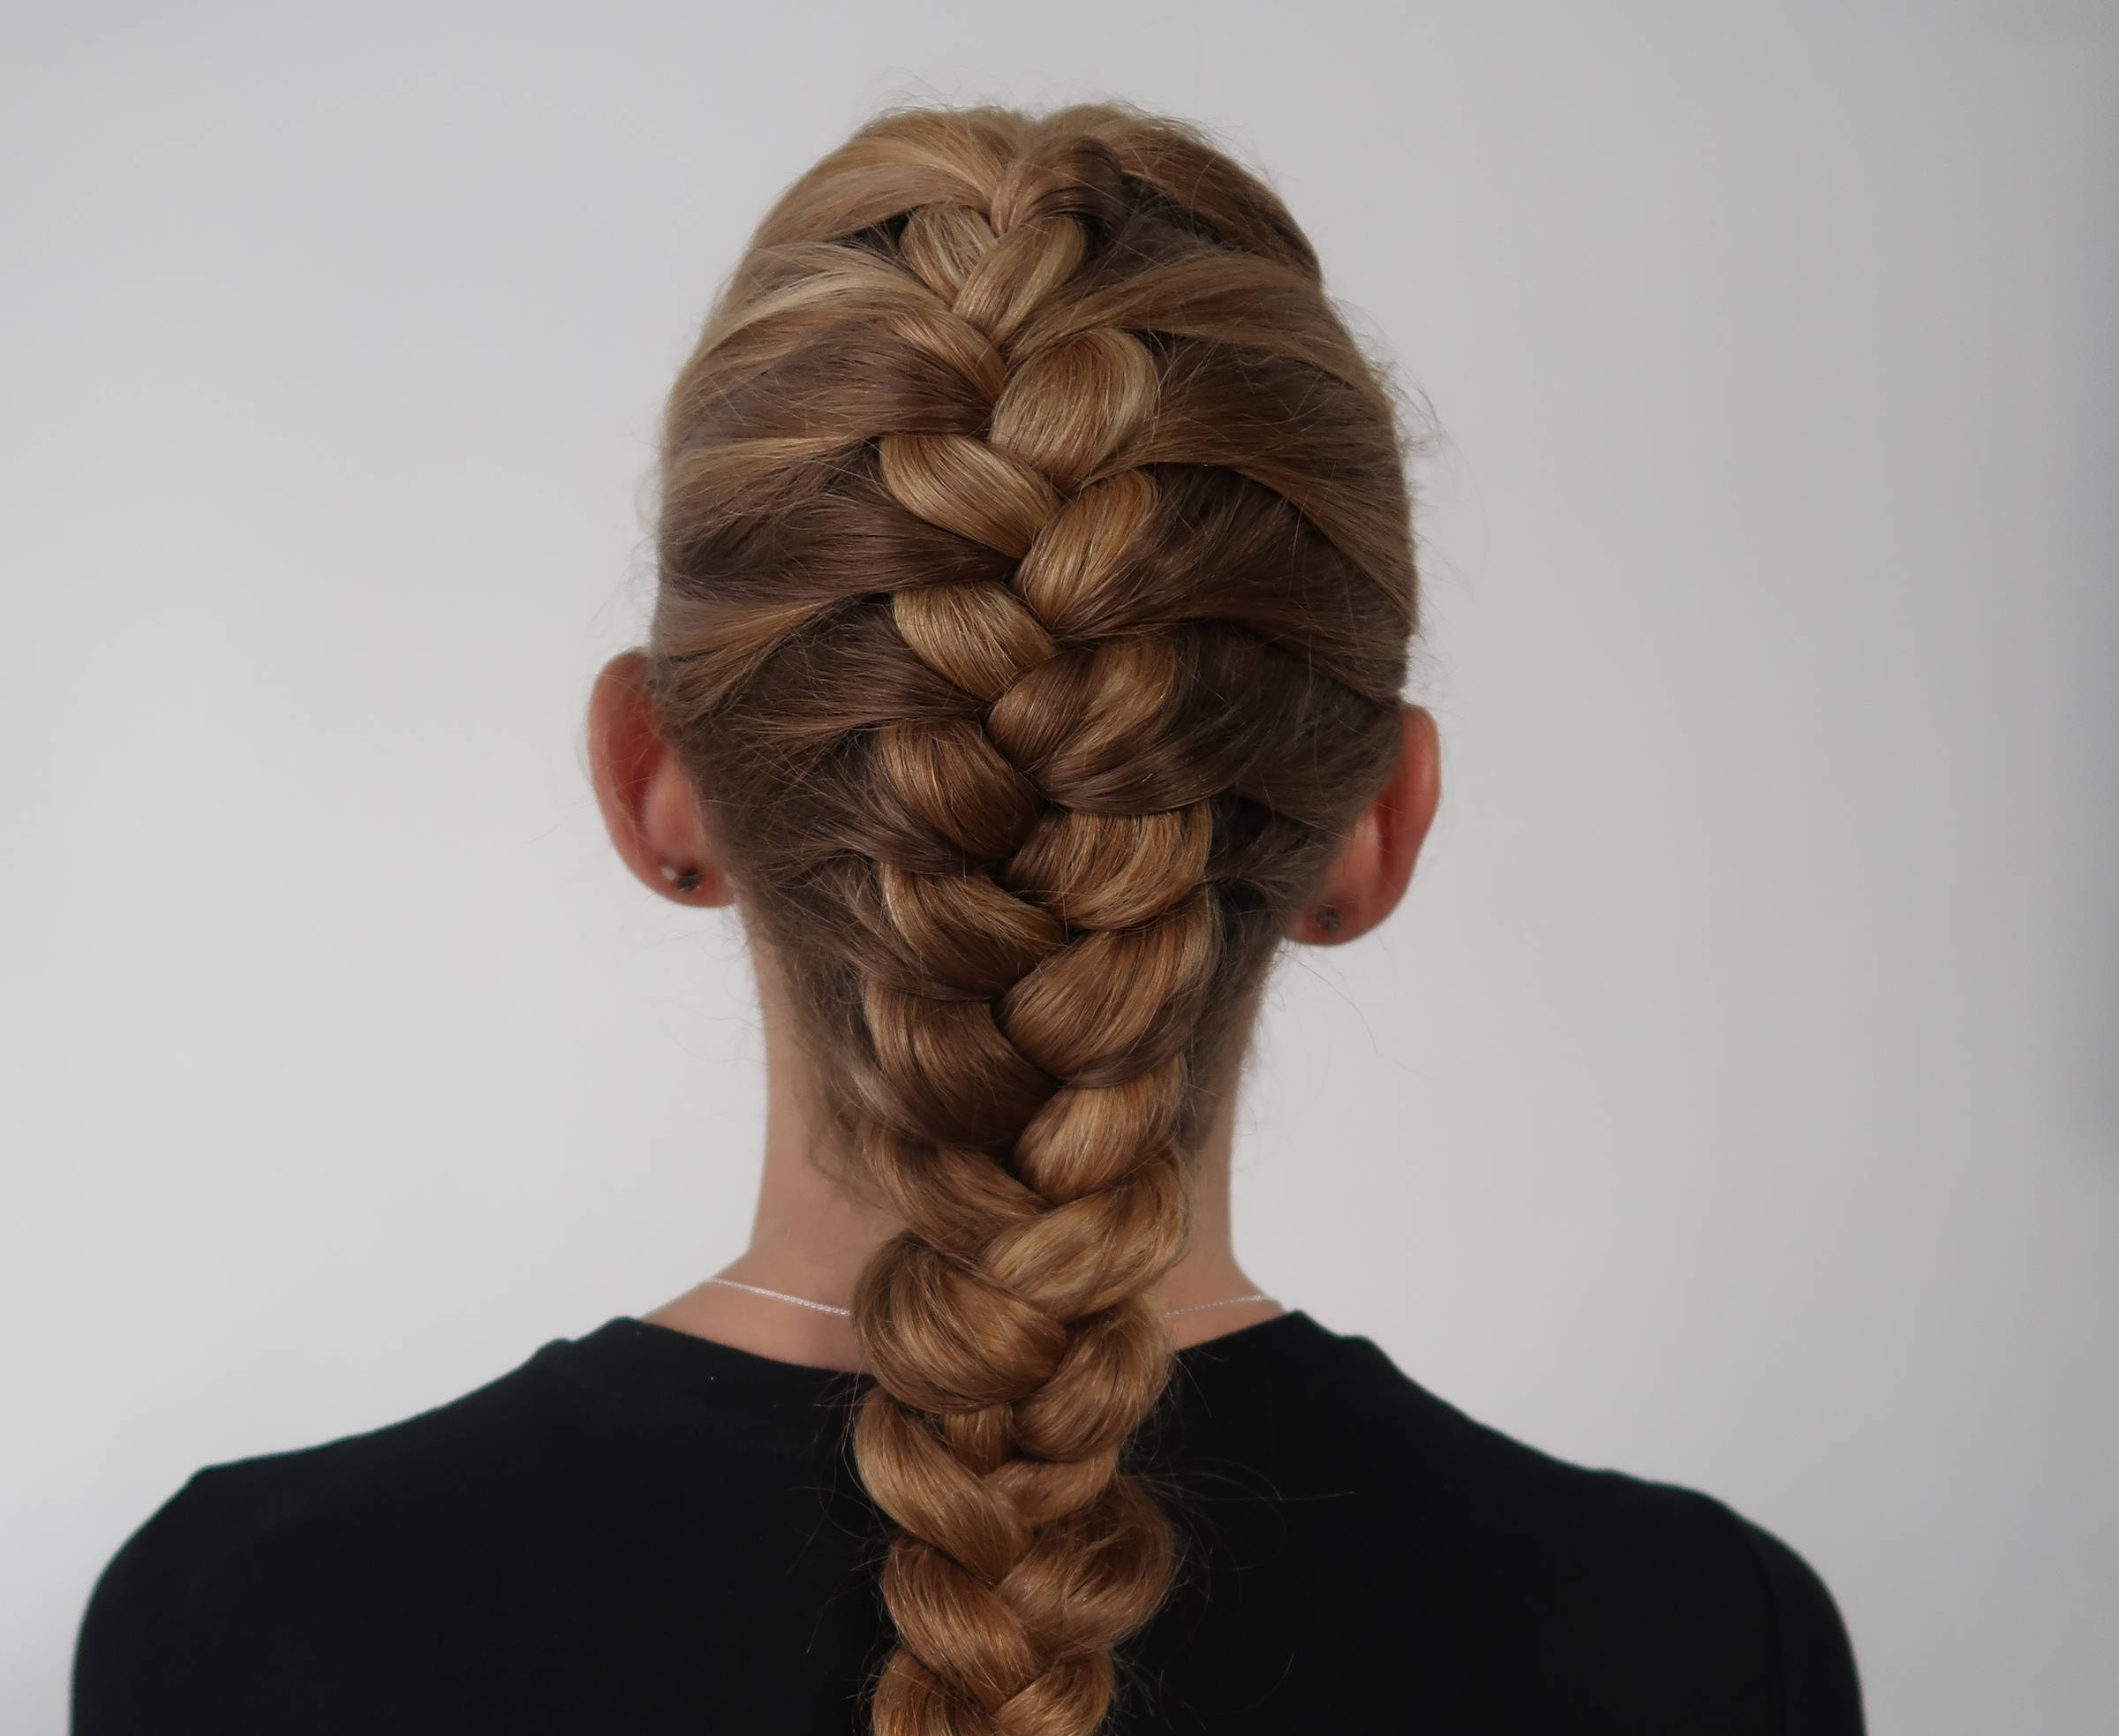 Davines french braid how to tutorial